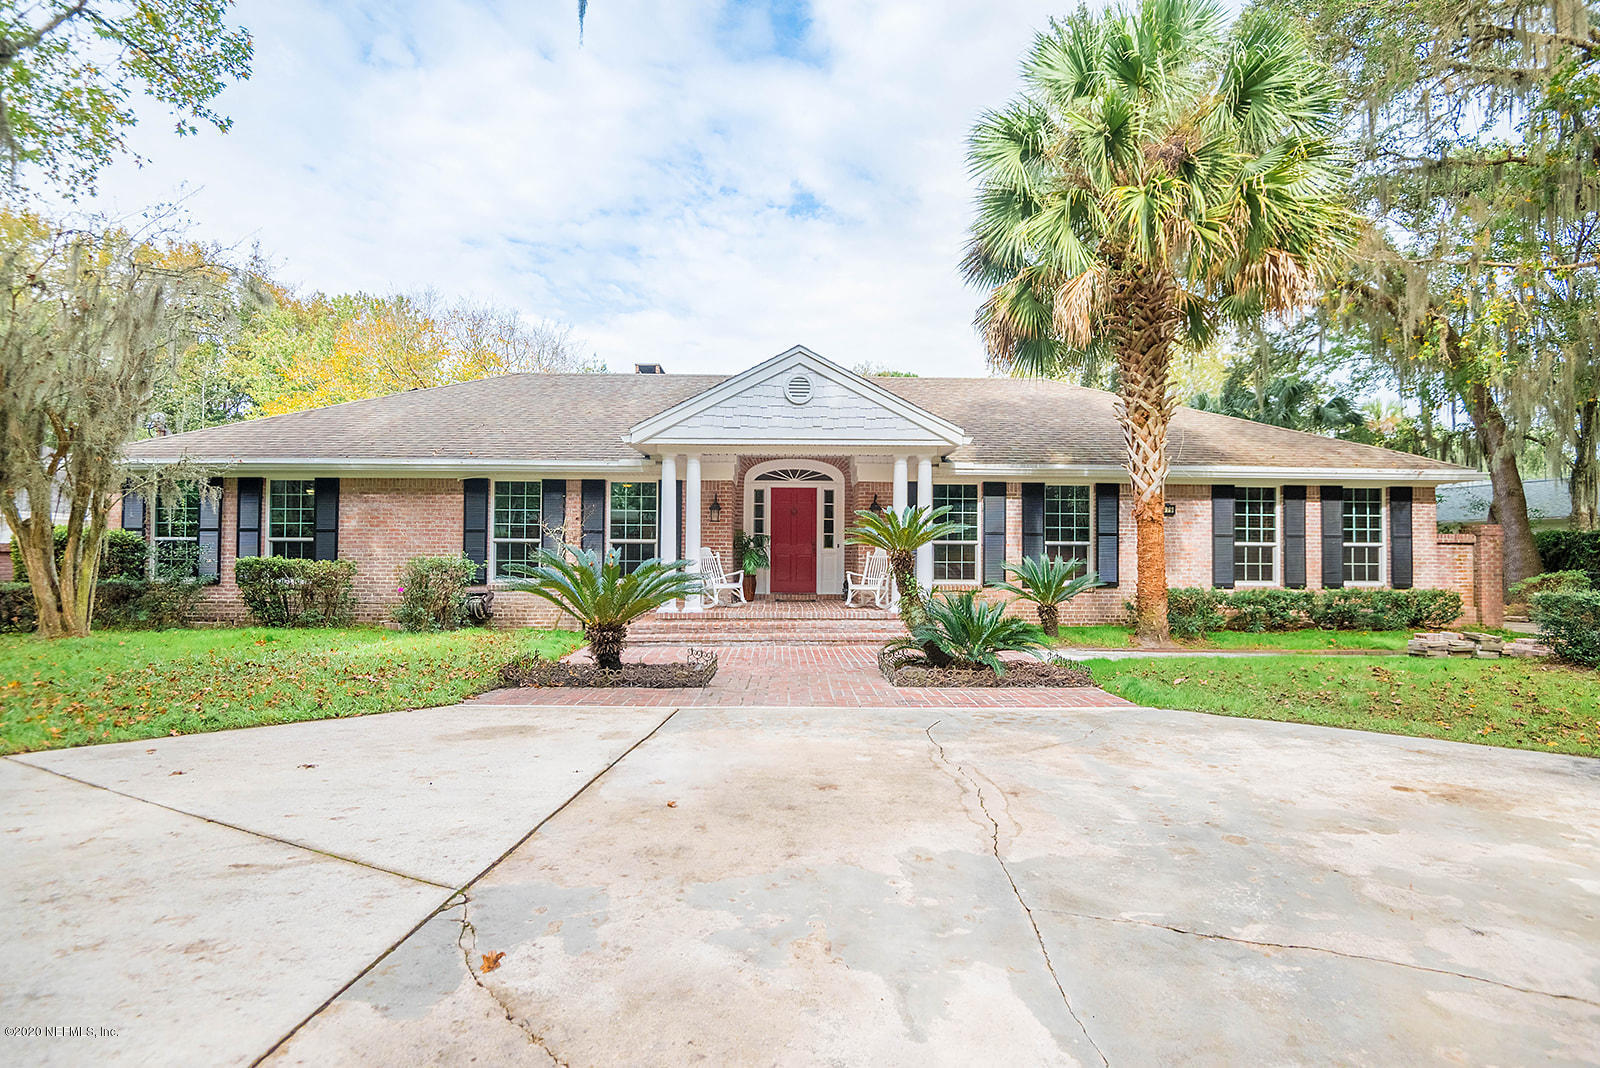 2479 HOLLY POINT, ORANGE PARK, FLORIDA 32073, 5 Bedrooms Bedrooms, ,3 BathroomsBathrooms,Residential,For sale,HOLLY POINT,1085425